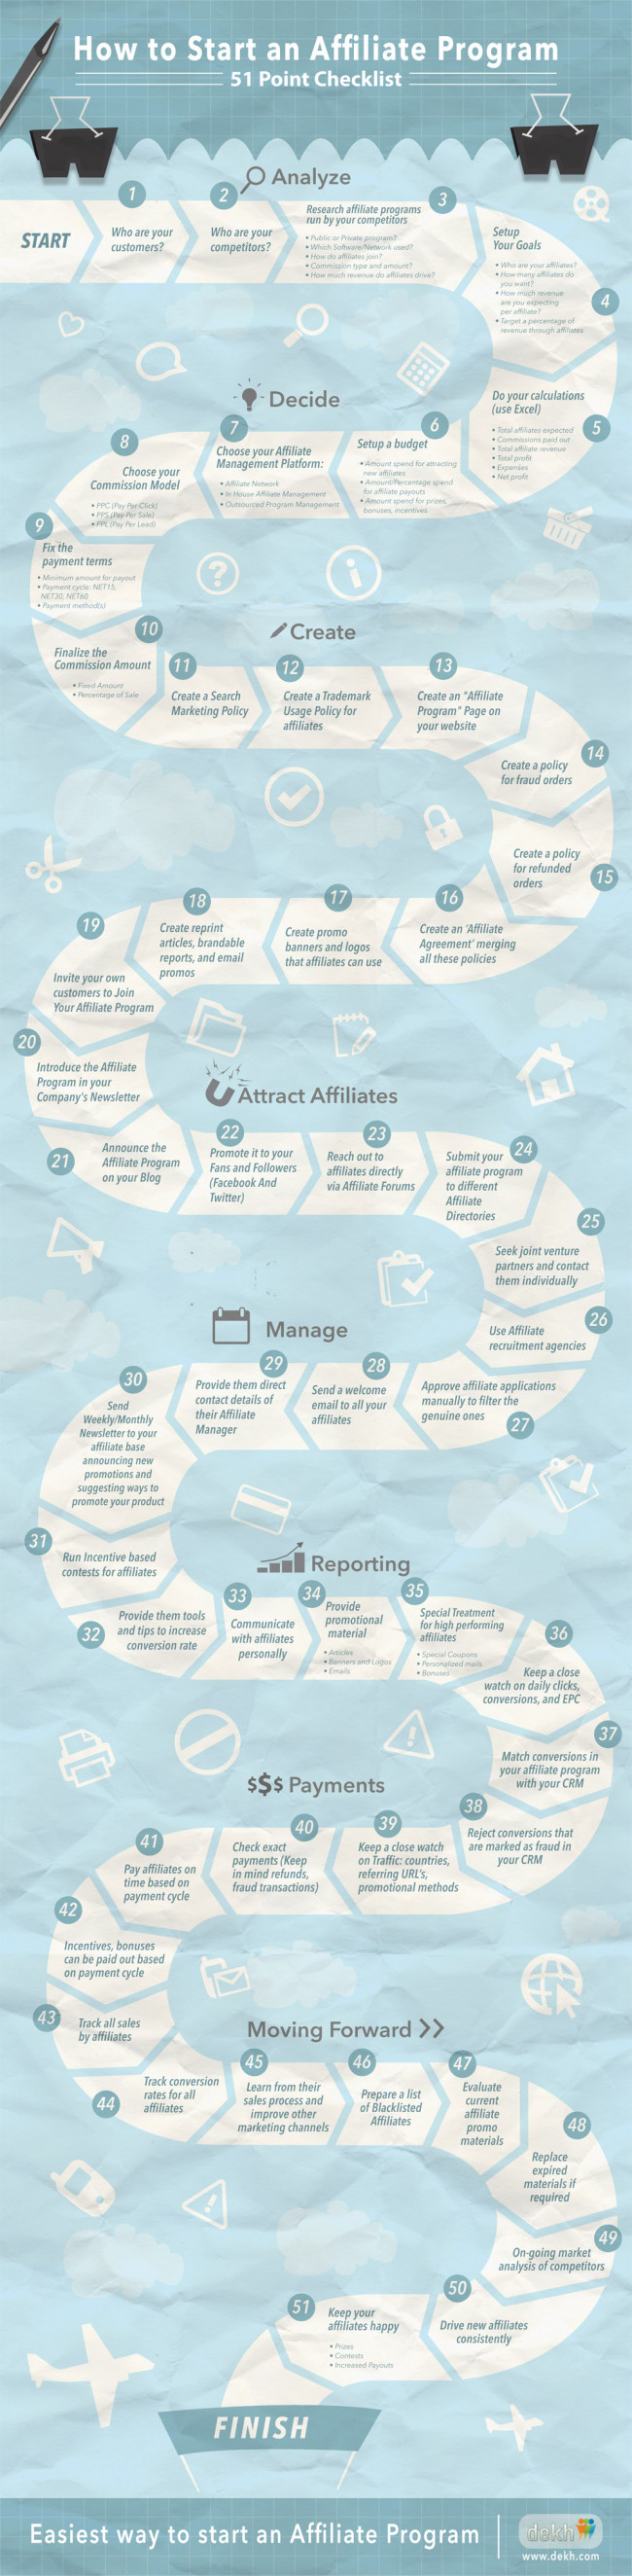 How To Start An Affiliate Program: 51 Point Checklist